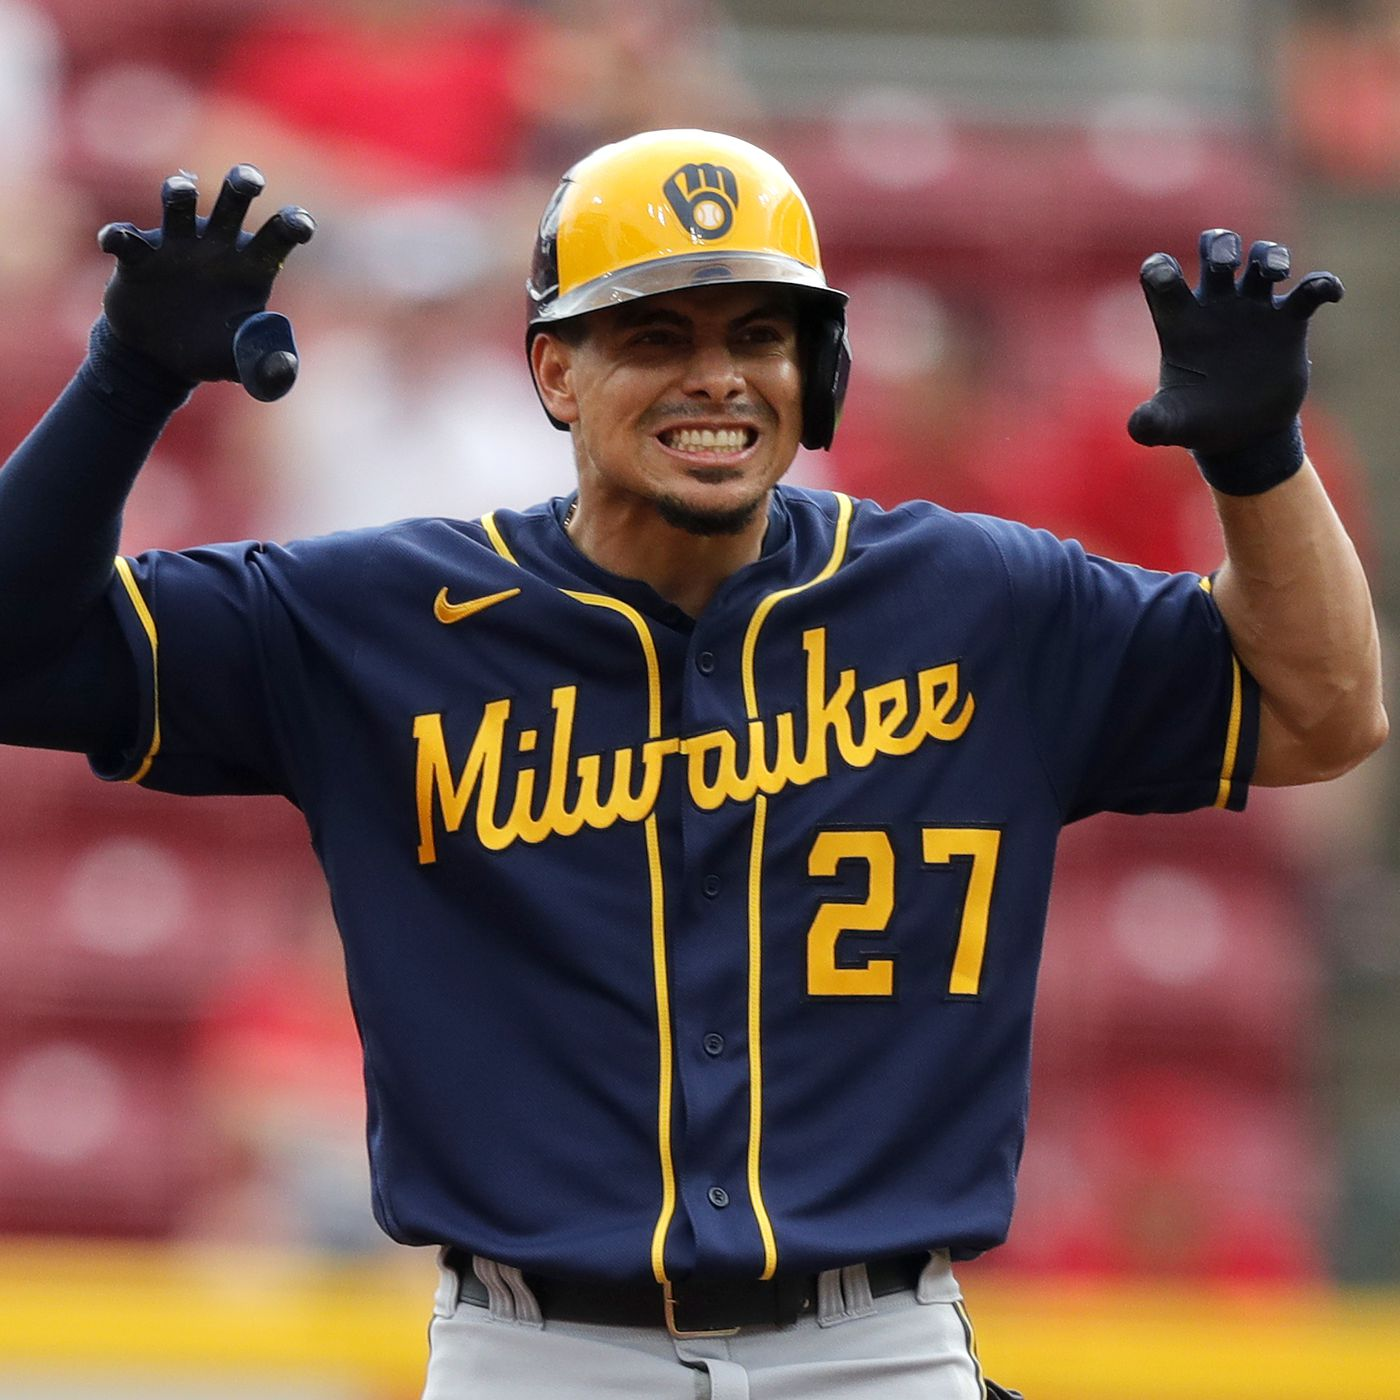 Brewers' Willy Adames is emerging as a top tier shortstop - Beyond the Box Score